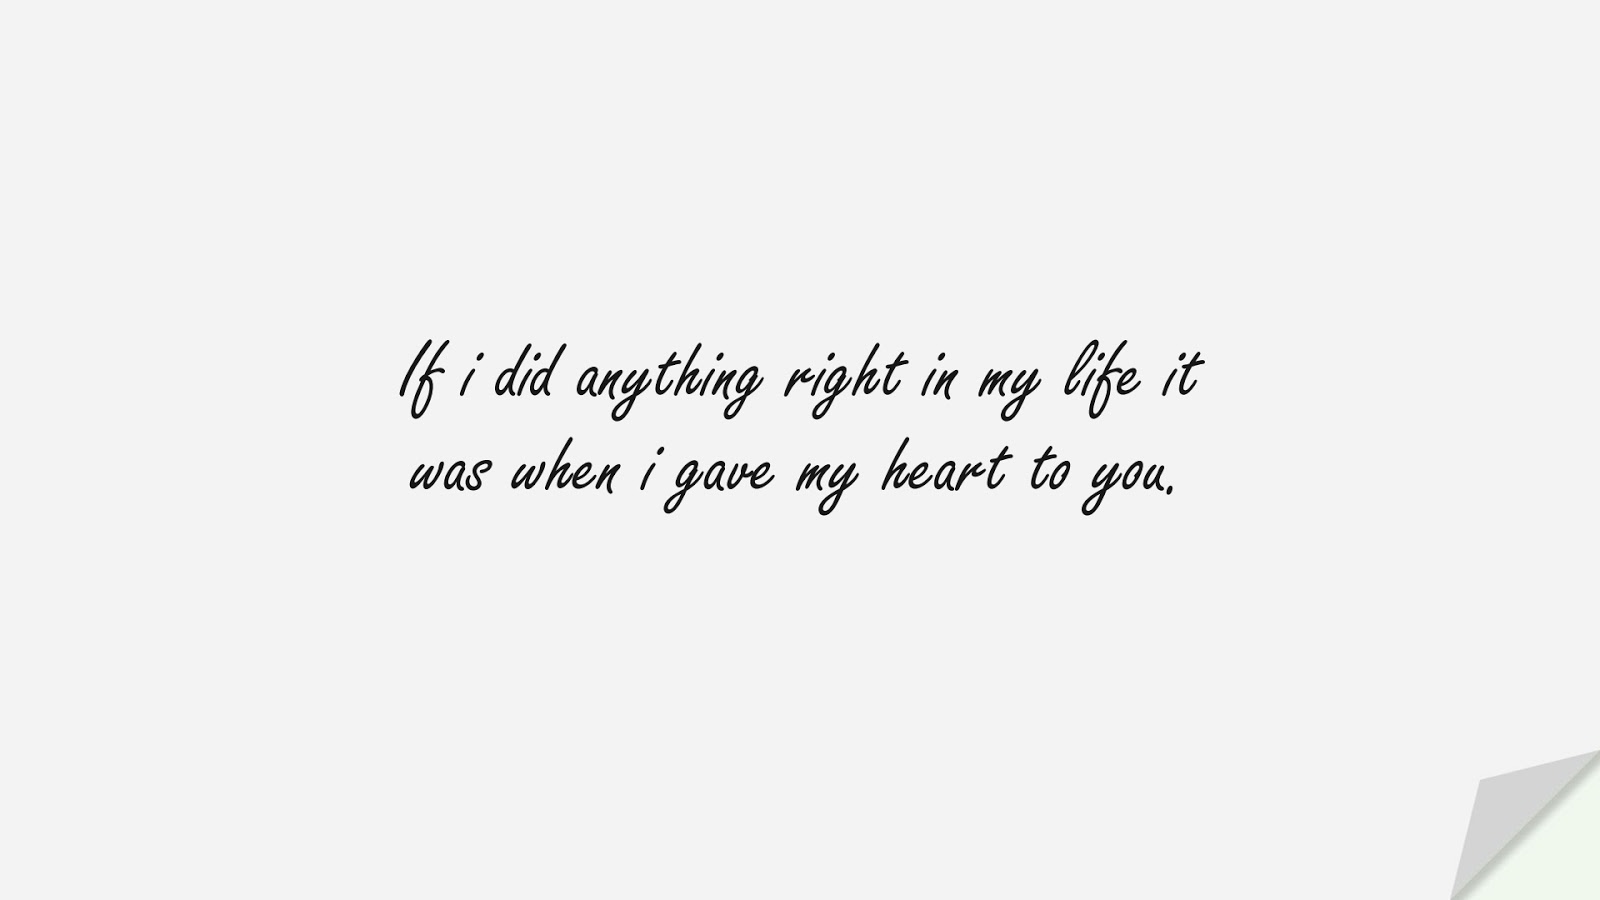 If i did anything right in my life it was when i gave my heart to you.FALSE